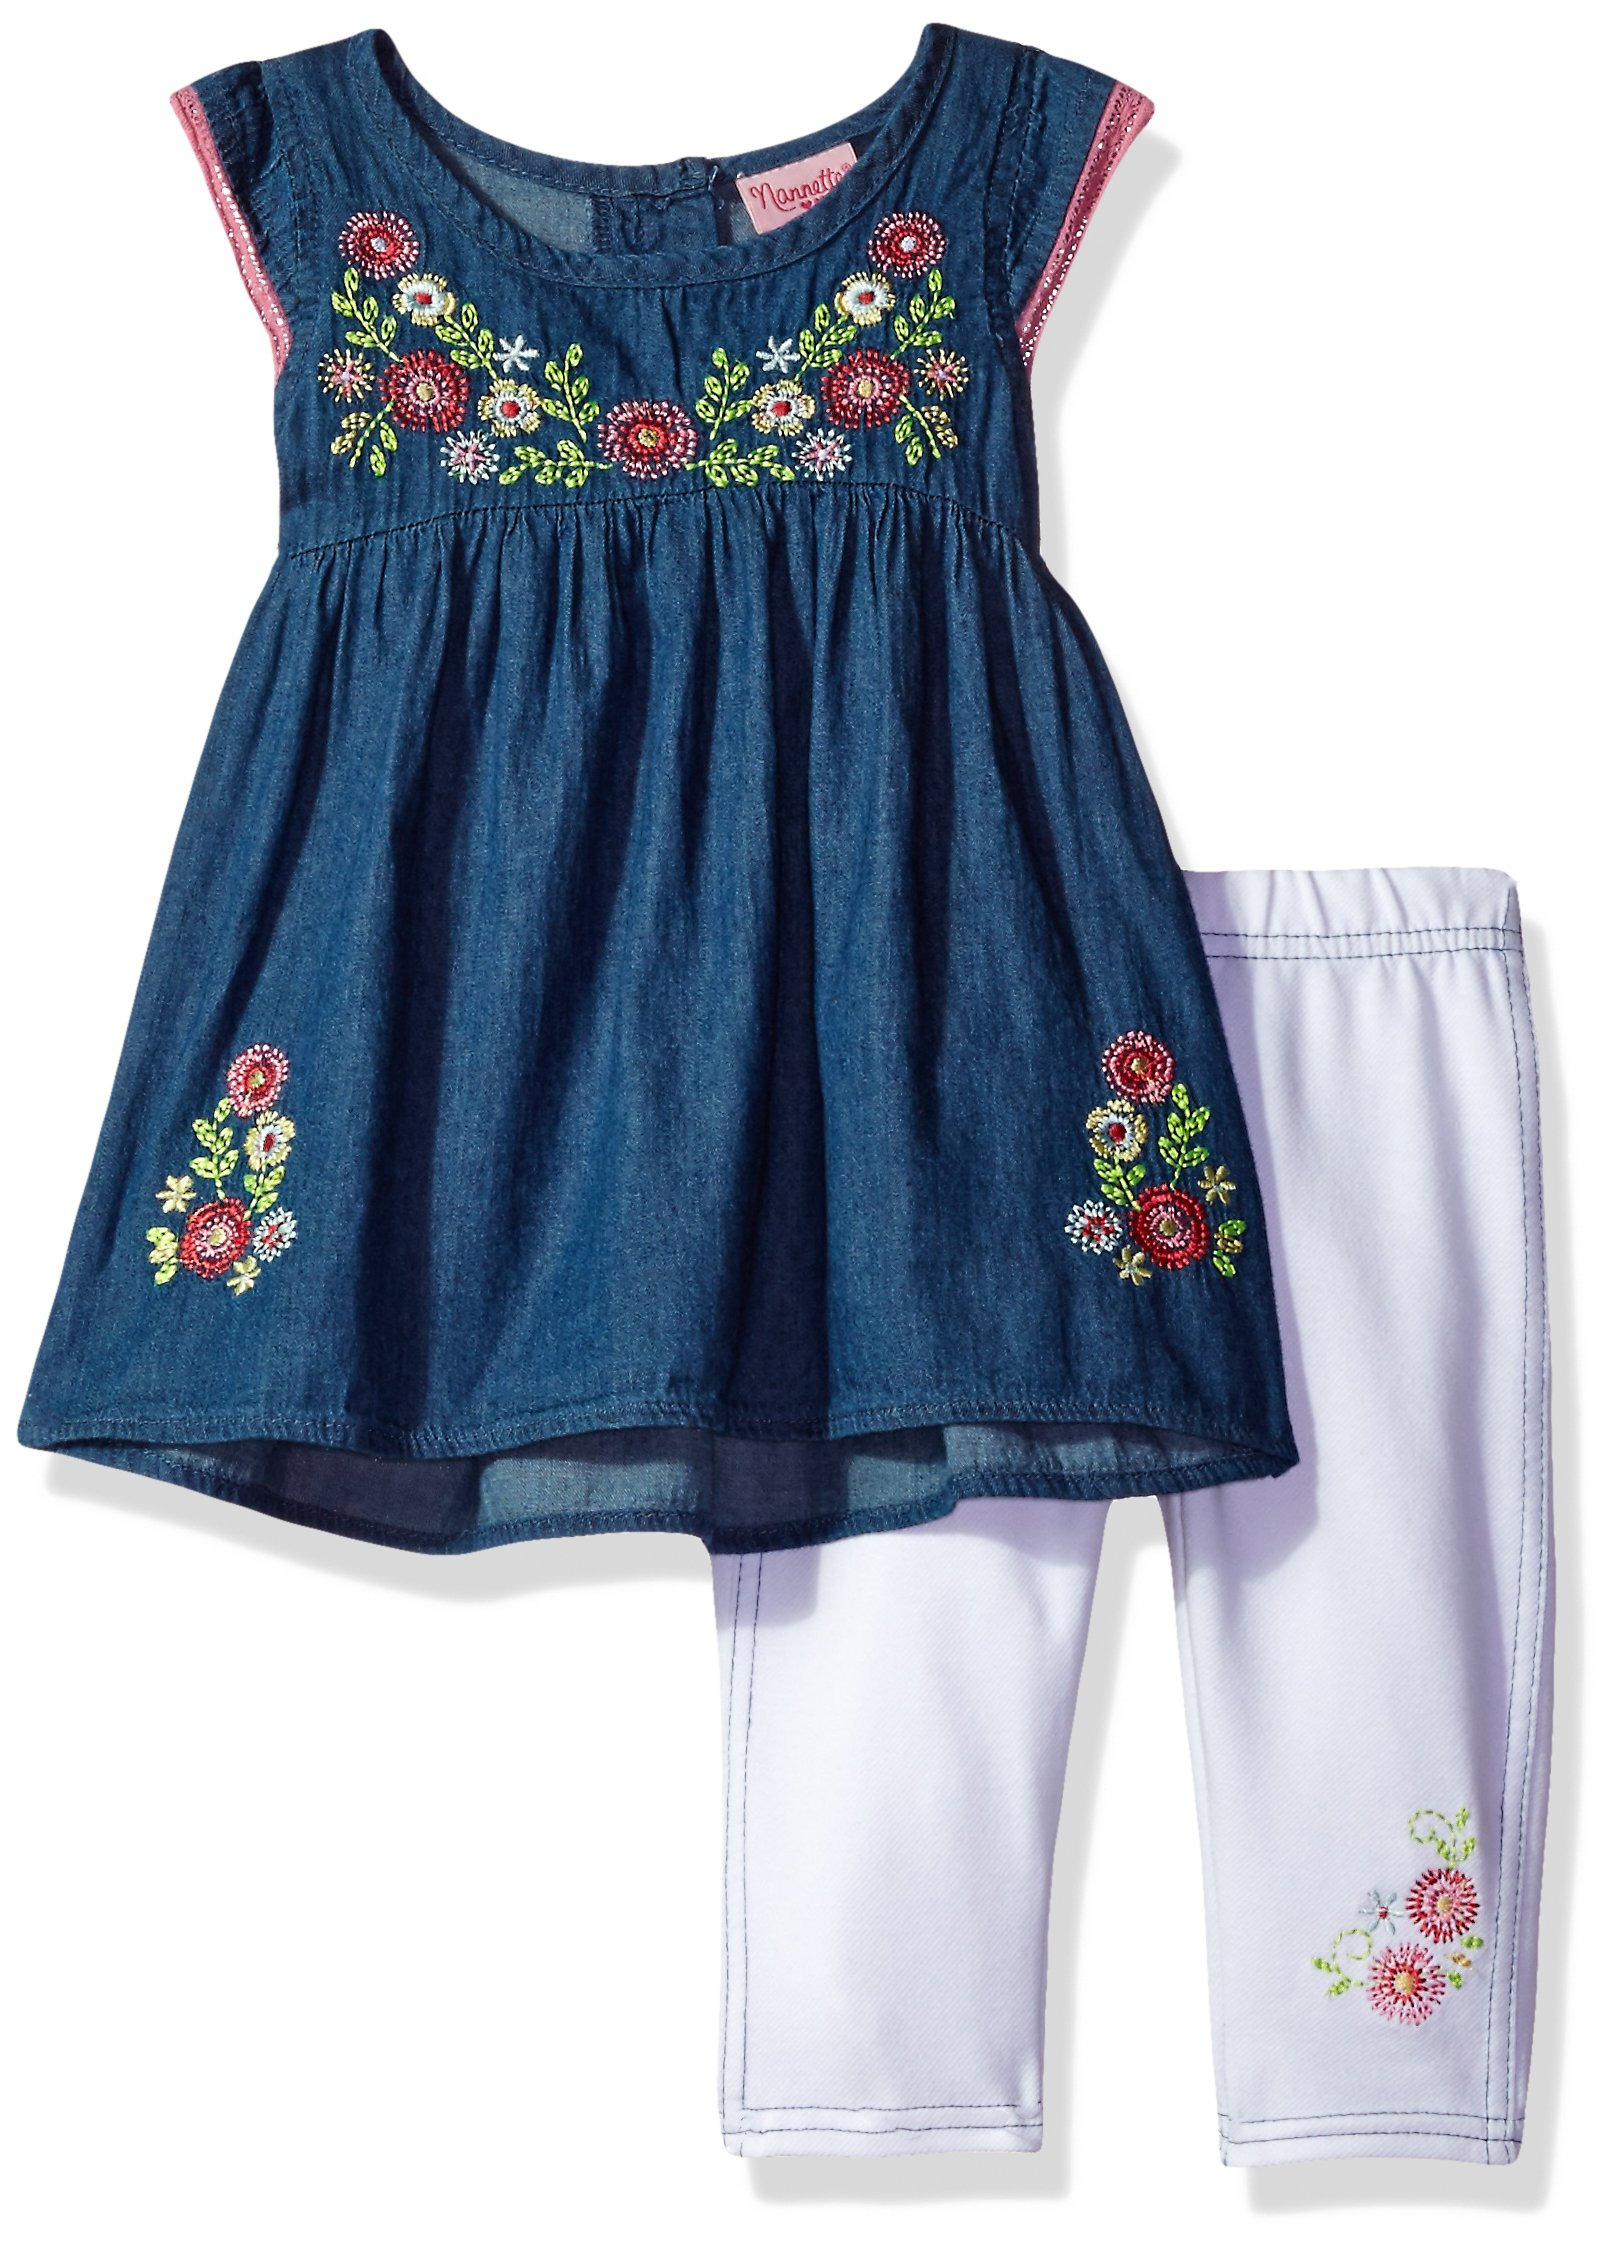 Nannette Toddler Girls' 2 Piece Set with Embroidered Chambray Top and Solid Legging, Blue, 3T